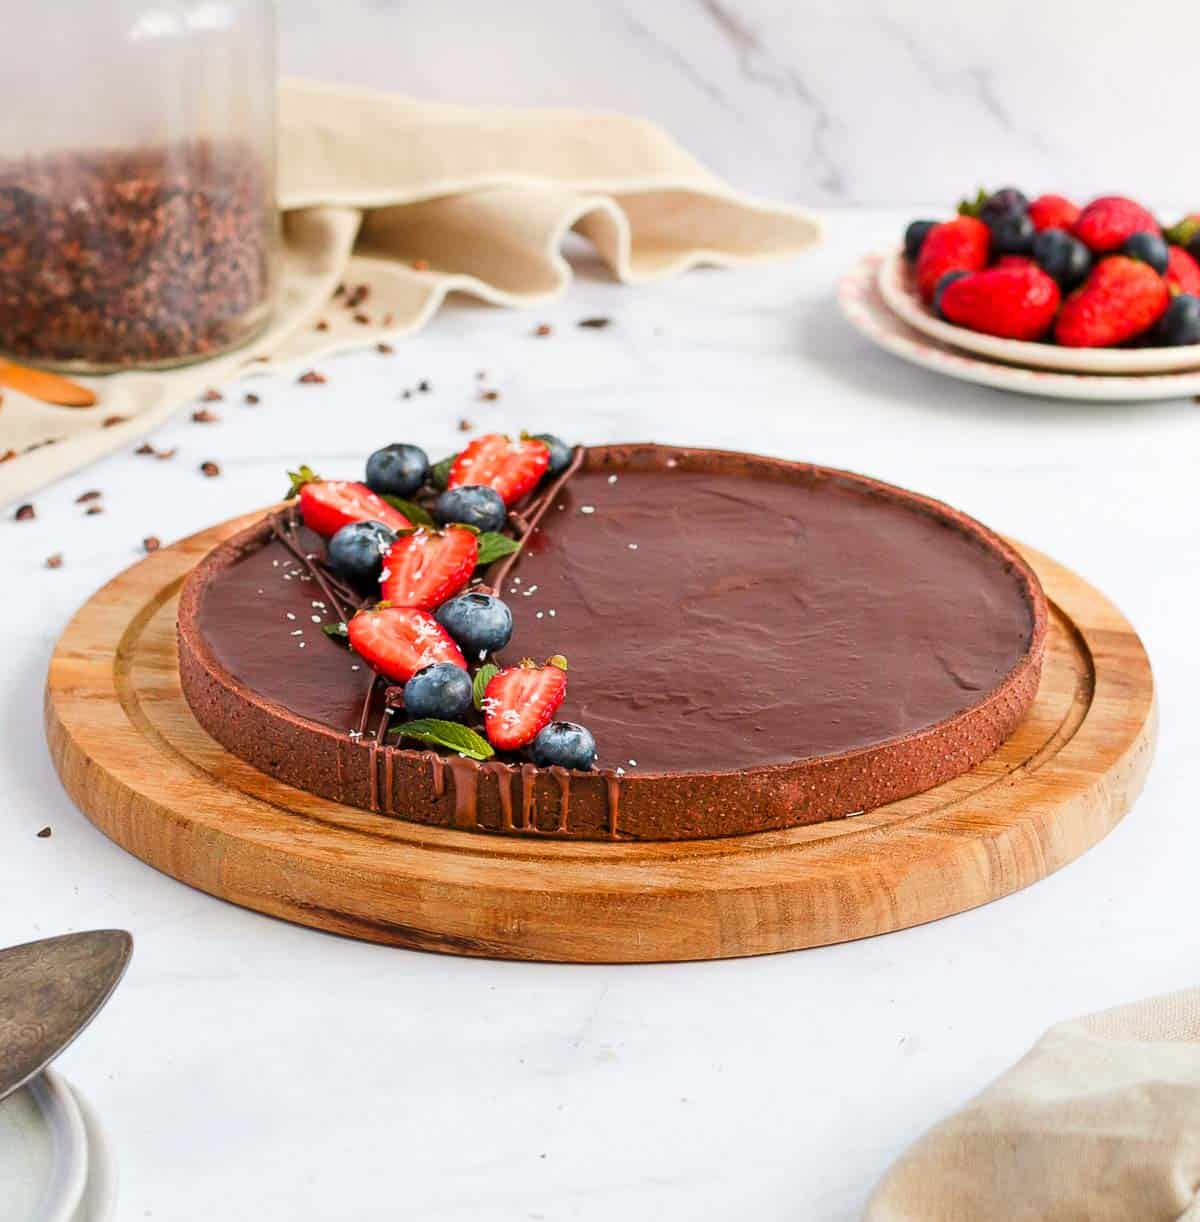 Tart on a round wooden board over a white surface.